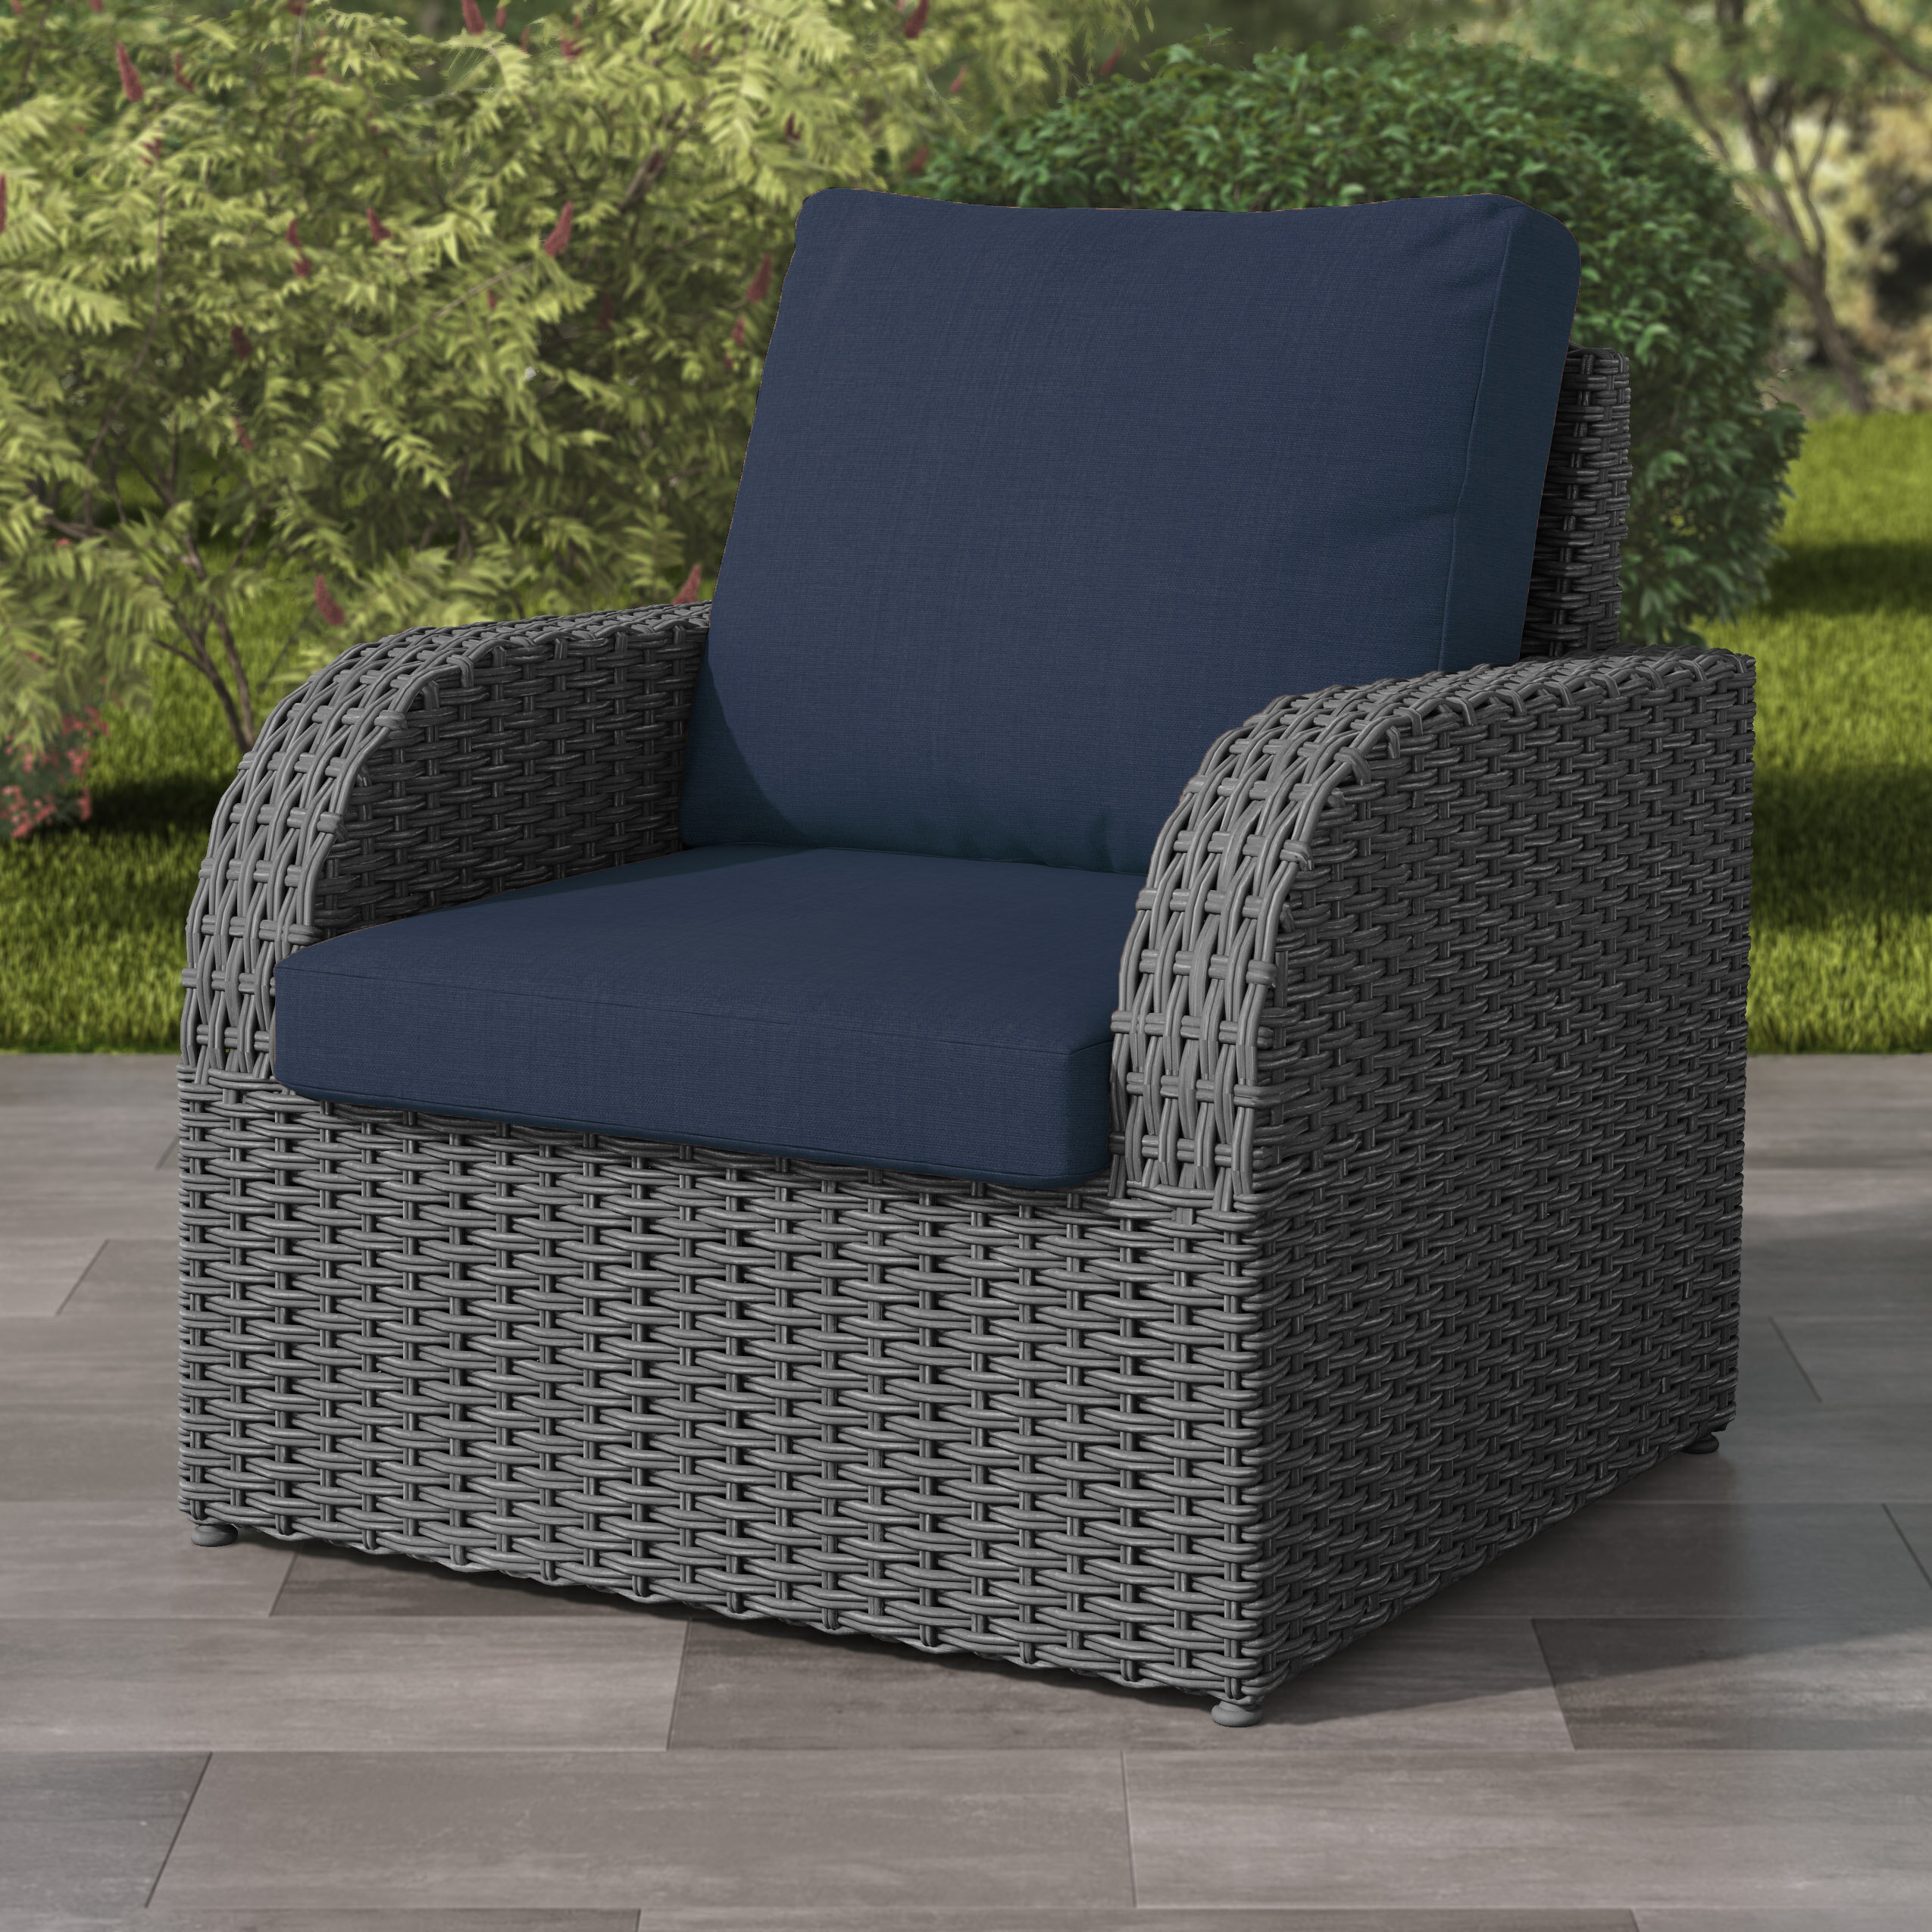 Rosecliff Heights Killingworth Weather Resistant Resin Wicker Patio